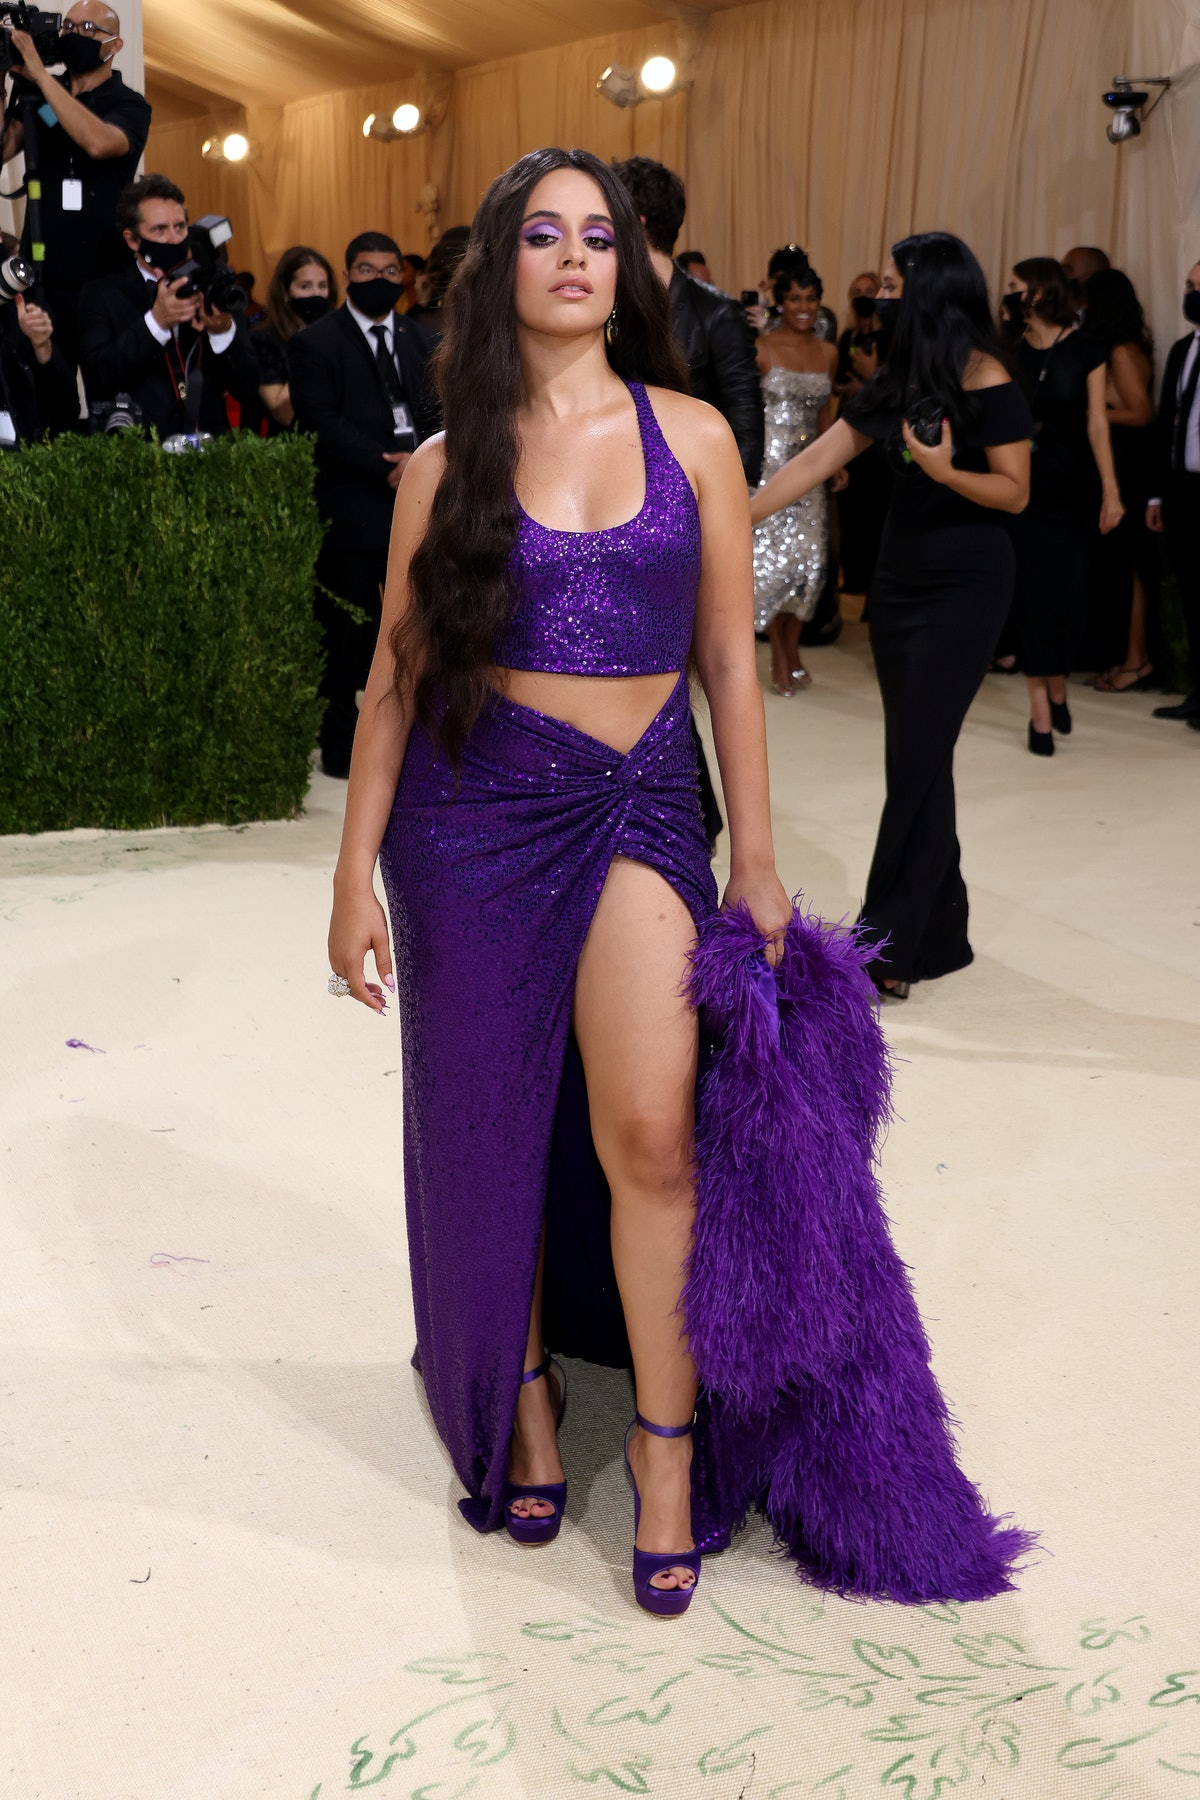 Camila Cabello and attends The 2021 Met Gala Celebrating In America: A Lexicon Of Fashion at Metropo...